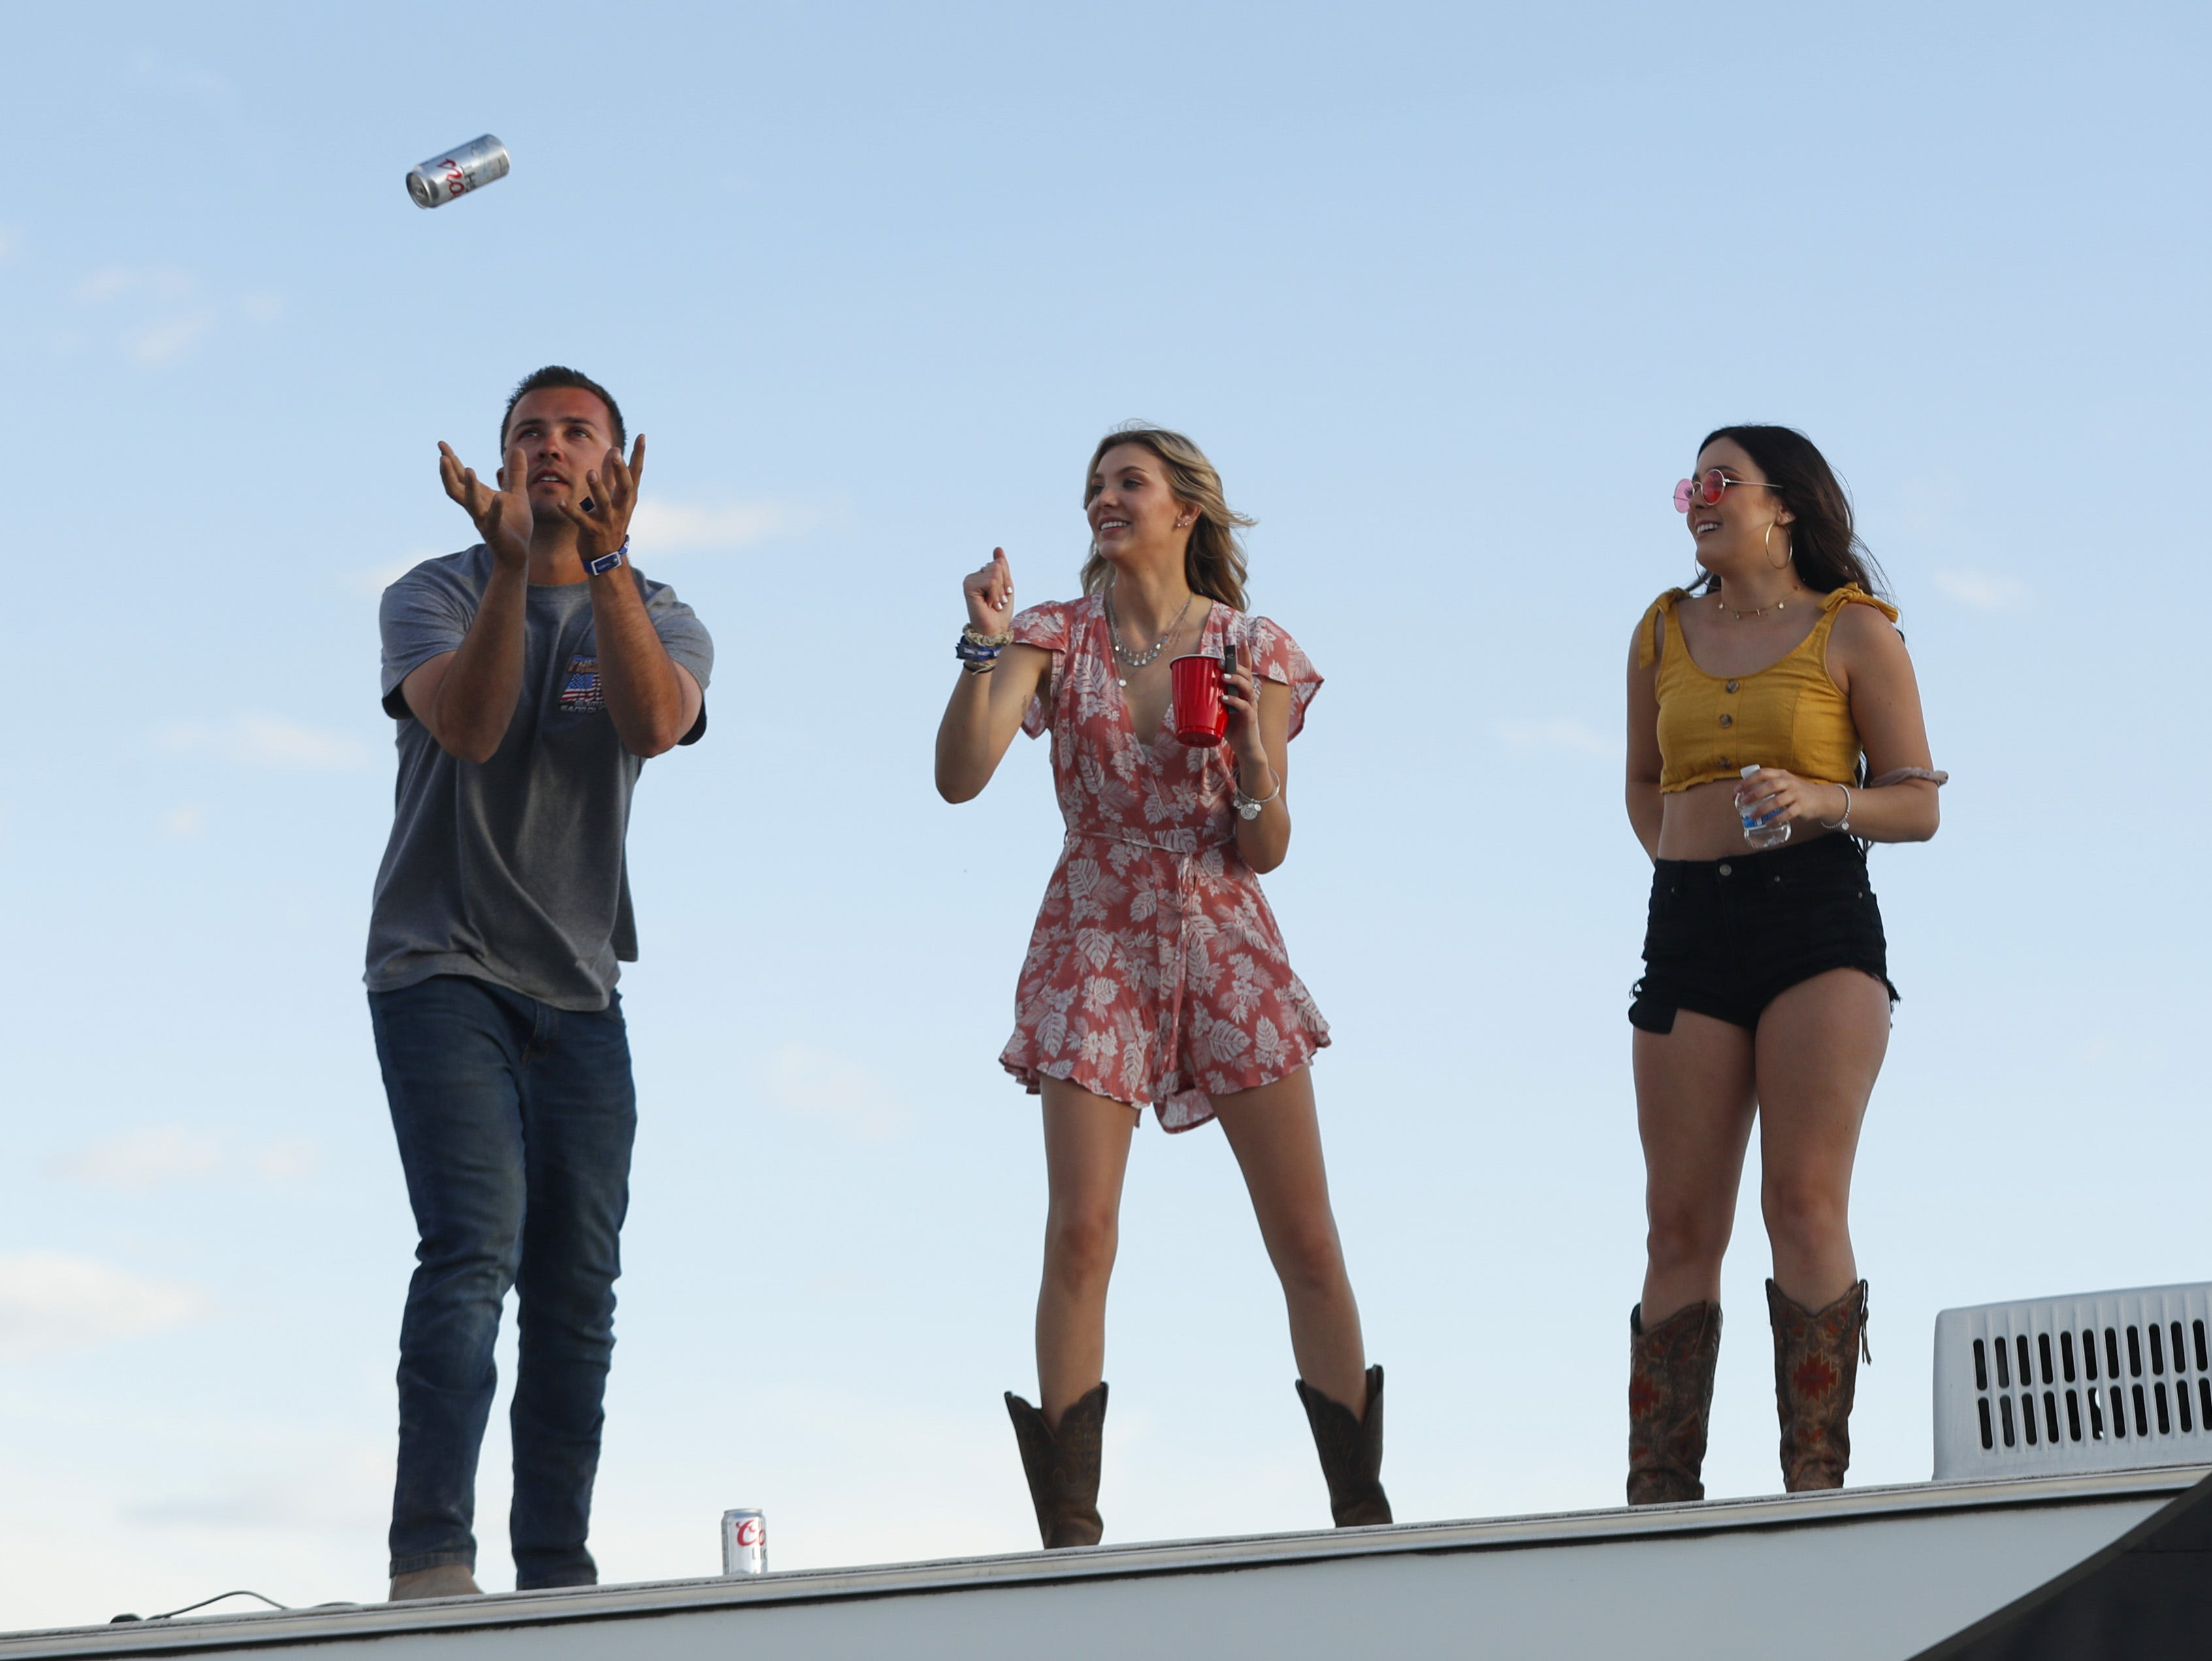 A beer is tossed to the top of a camper at the campsites during Country Thunder in Florence, Ariz. on Friday, April 12, 2019.